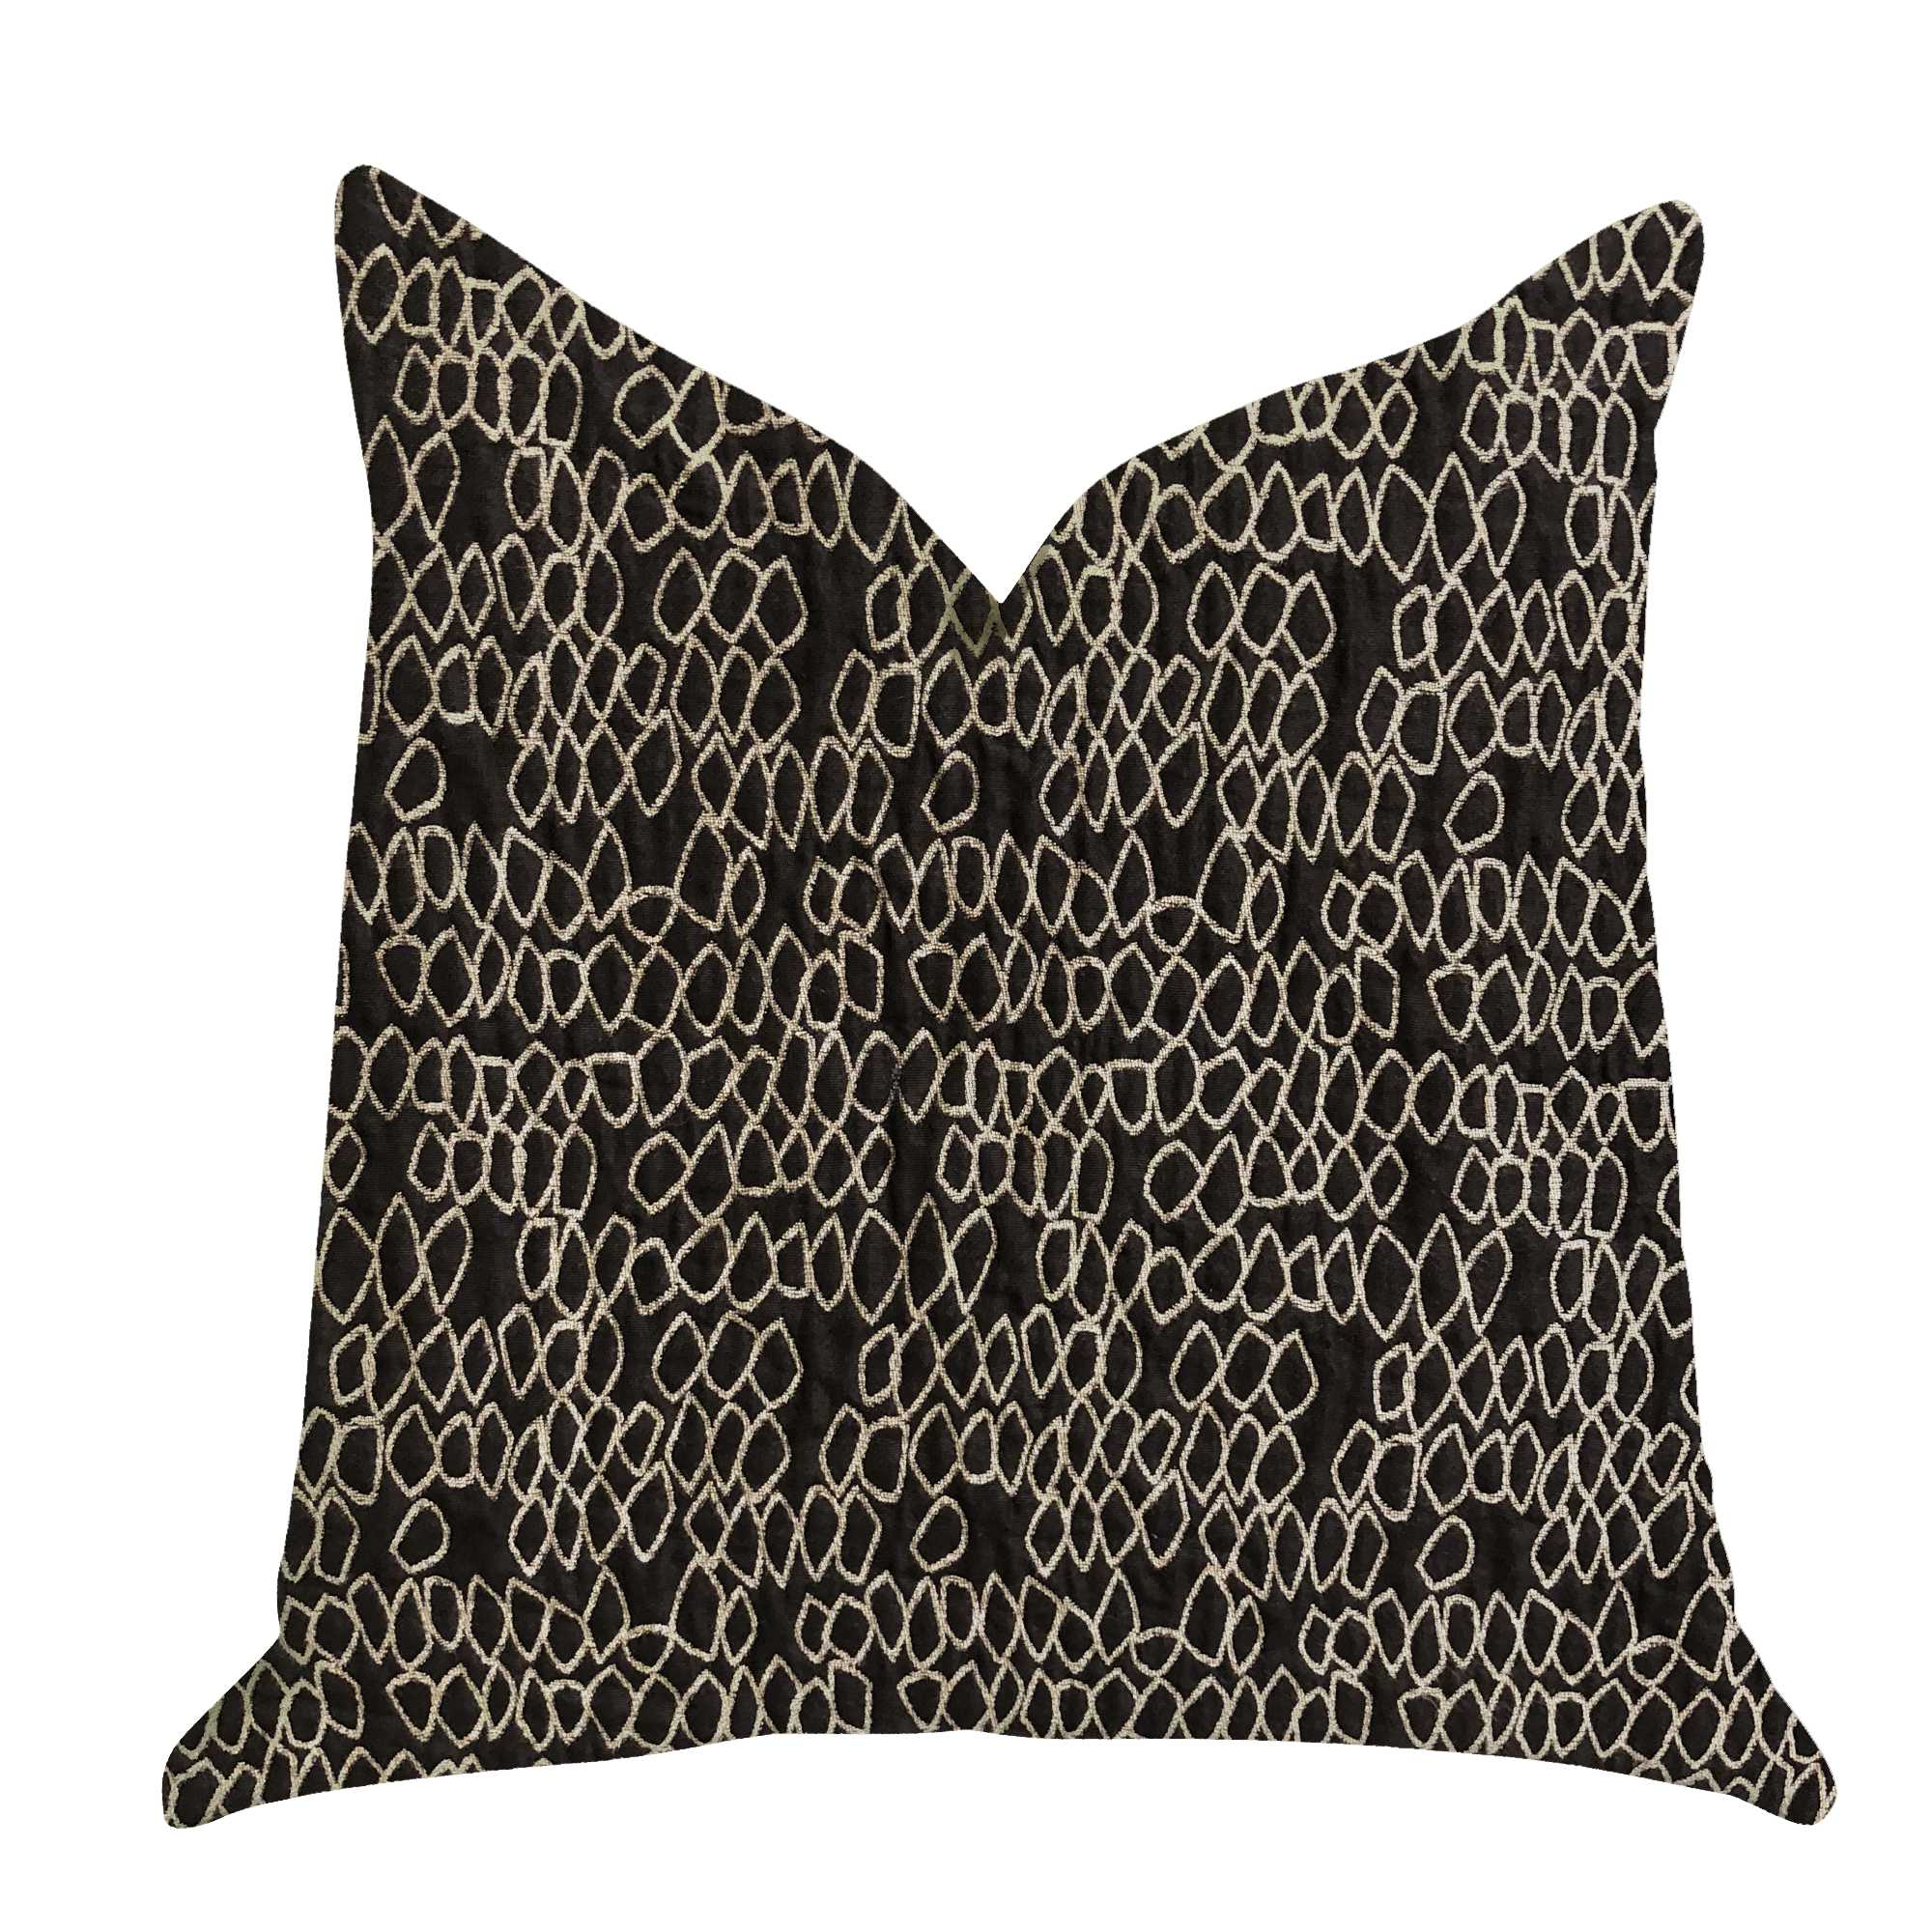 Luxury Throw Pillow in Black and White 12in x 25in